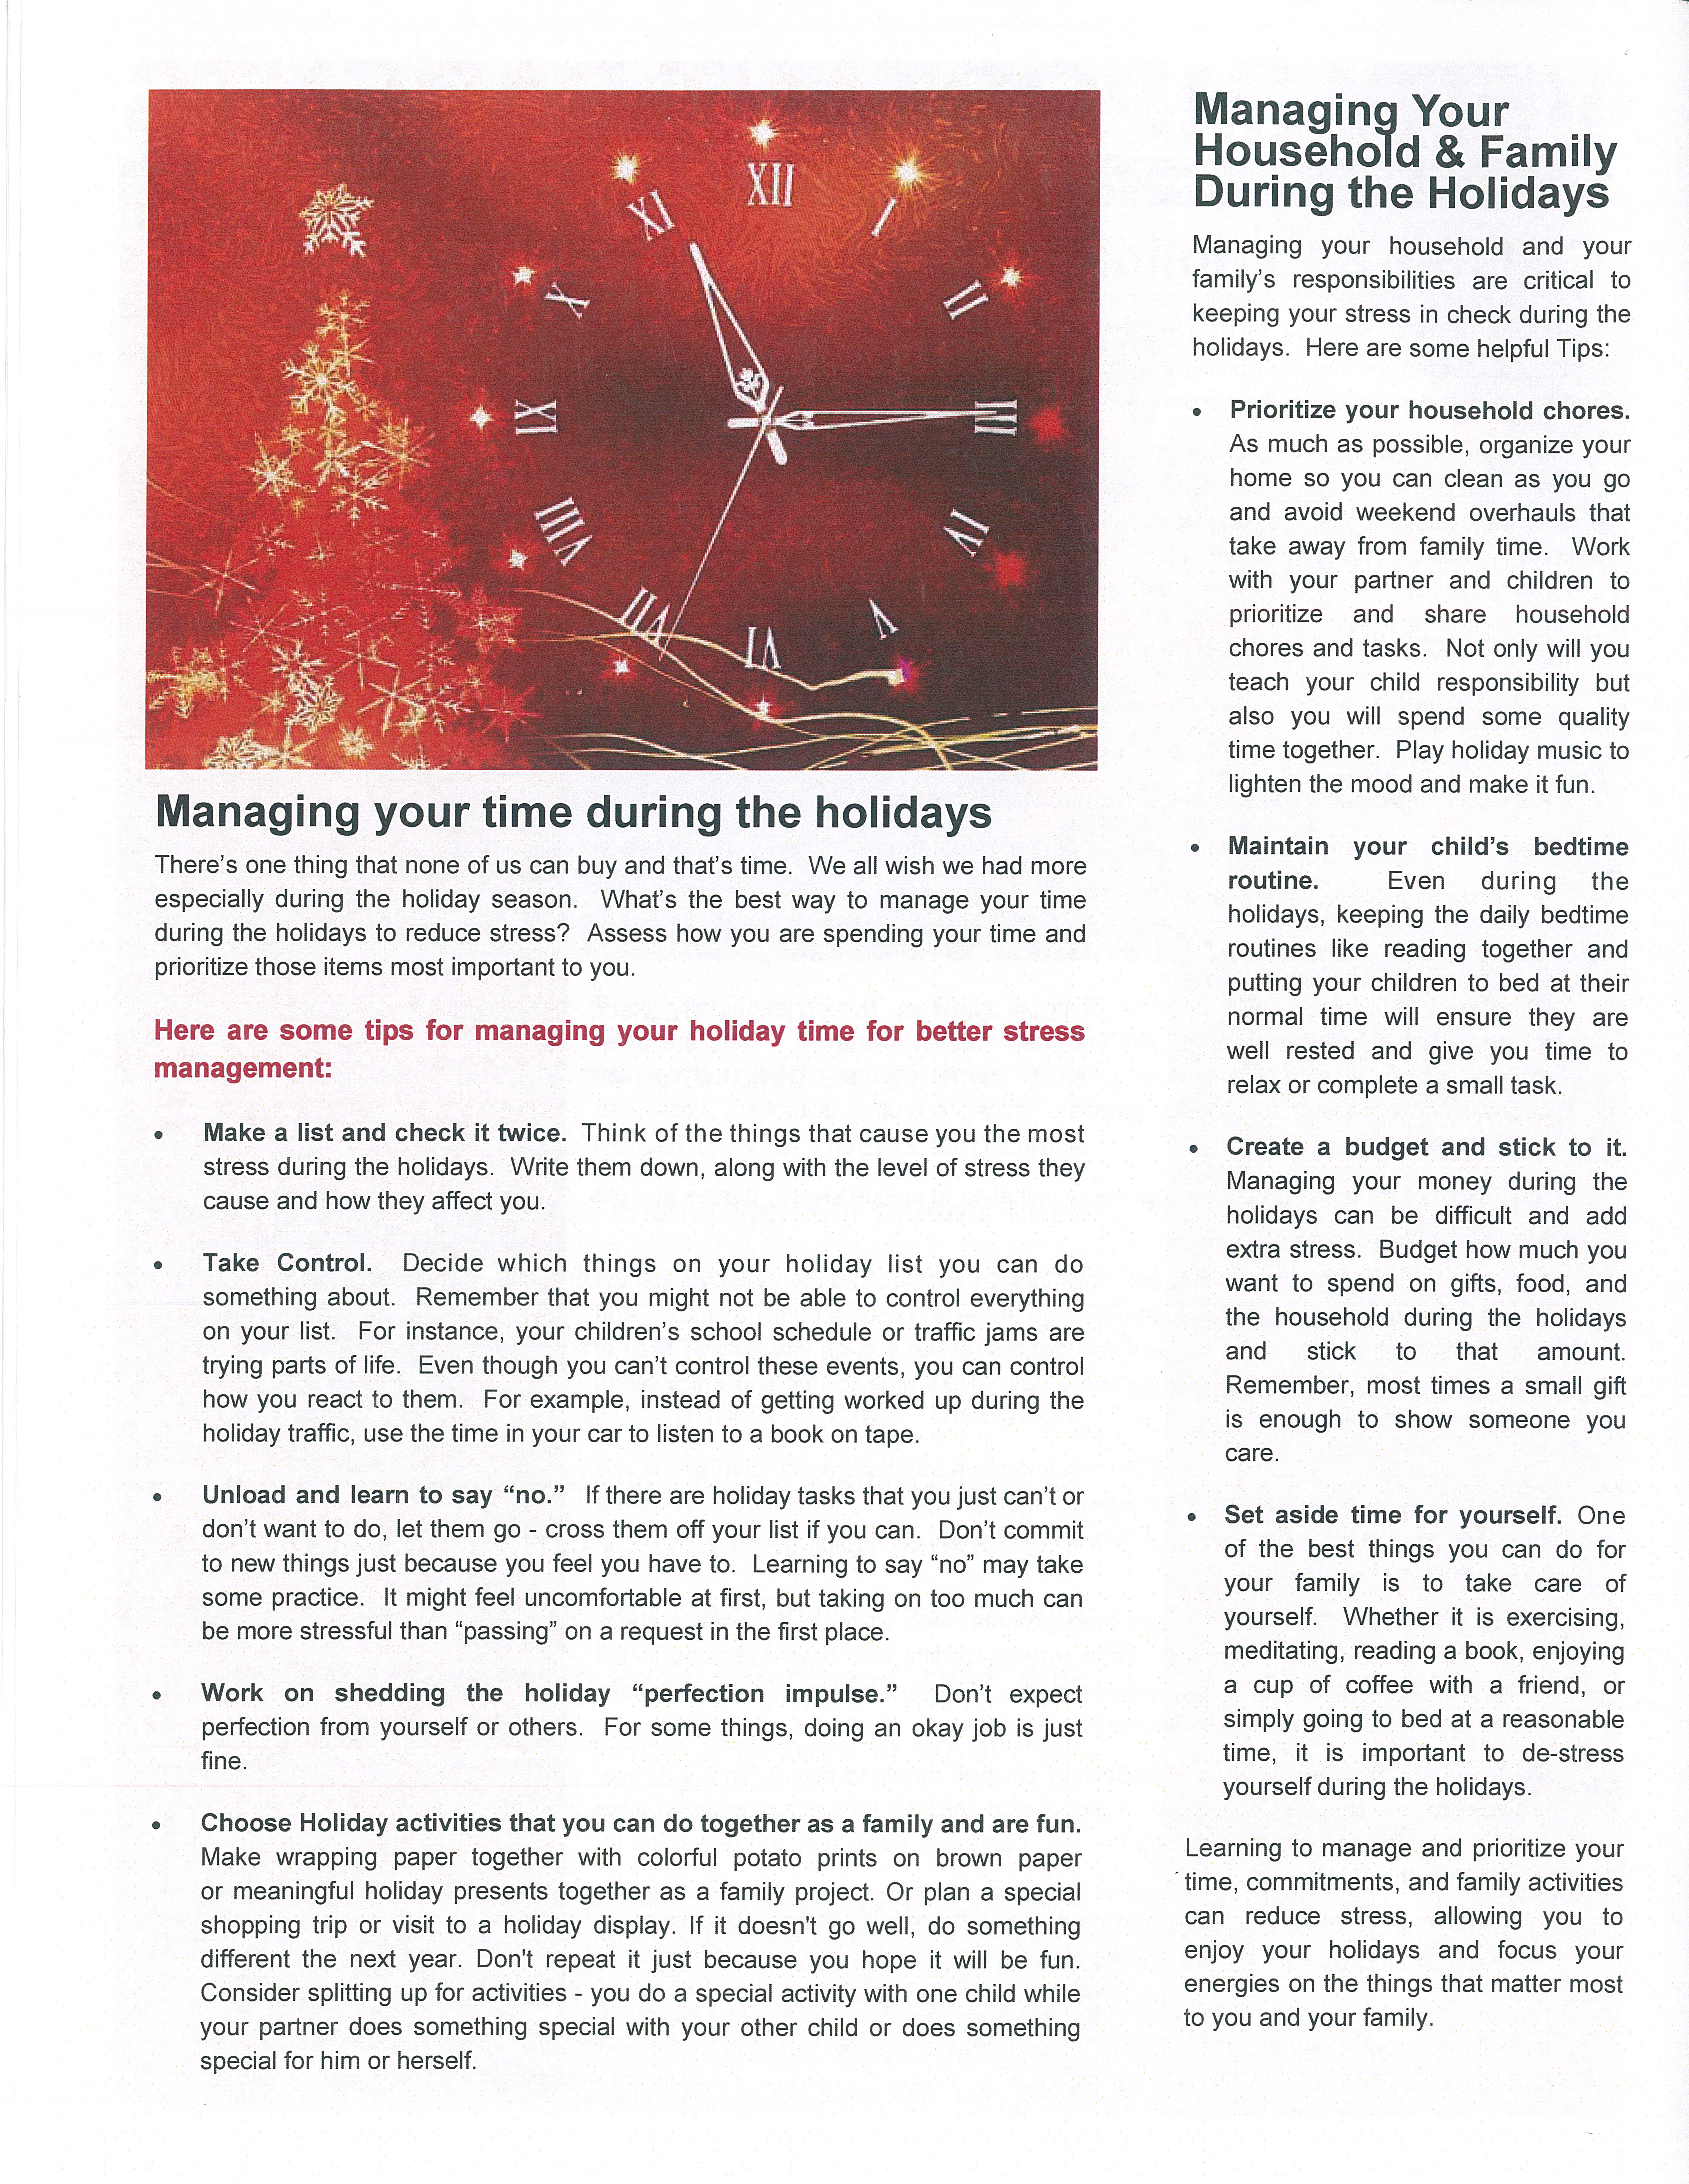 An article about managing your time and your home during the holidays